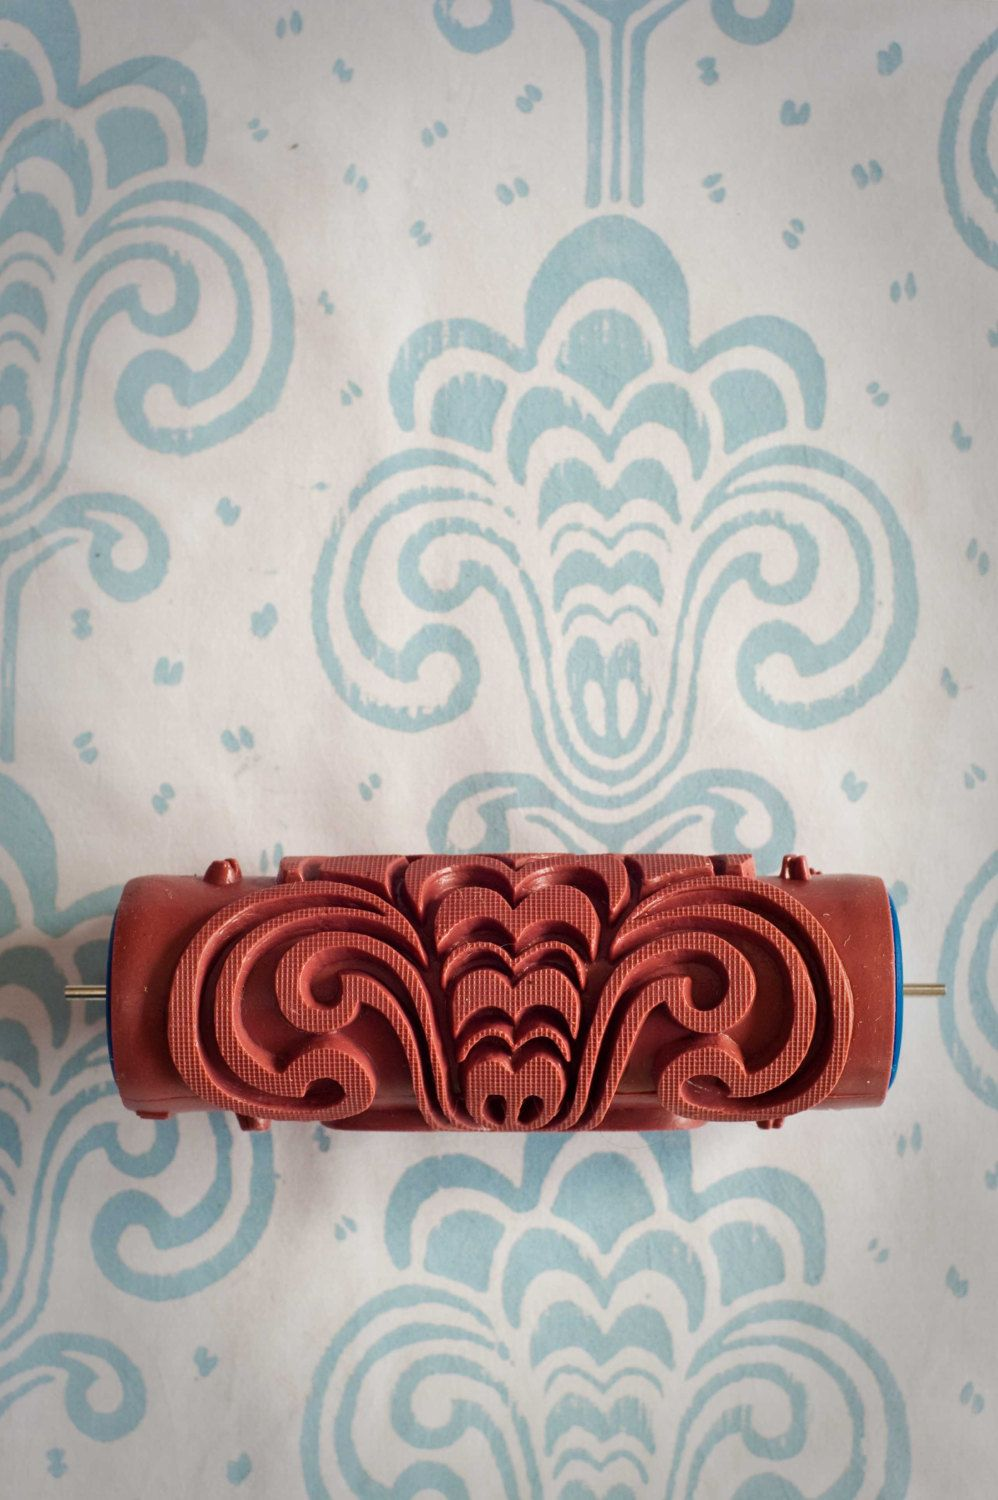 13 Patterned Paint Roller from The Painted House. 15.00, via Etsy